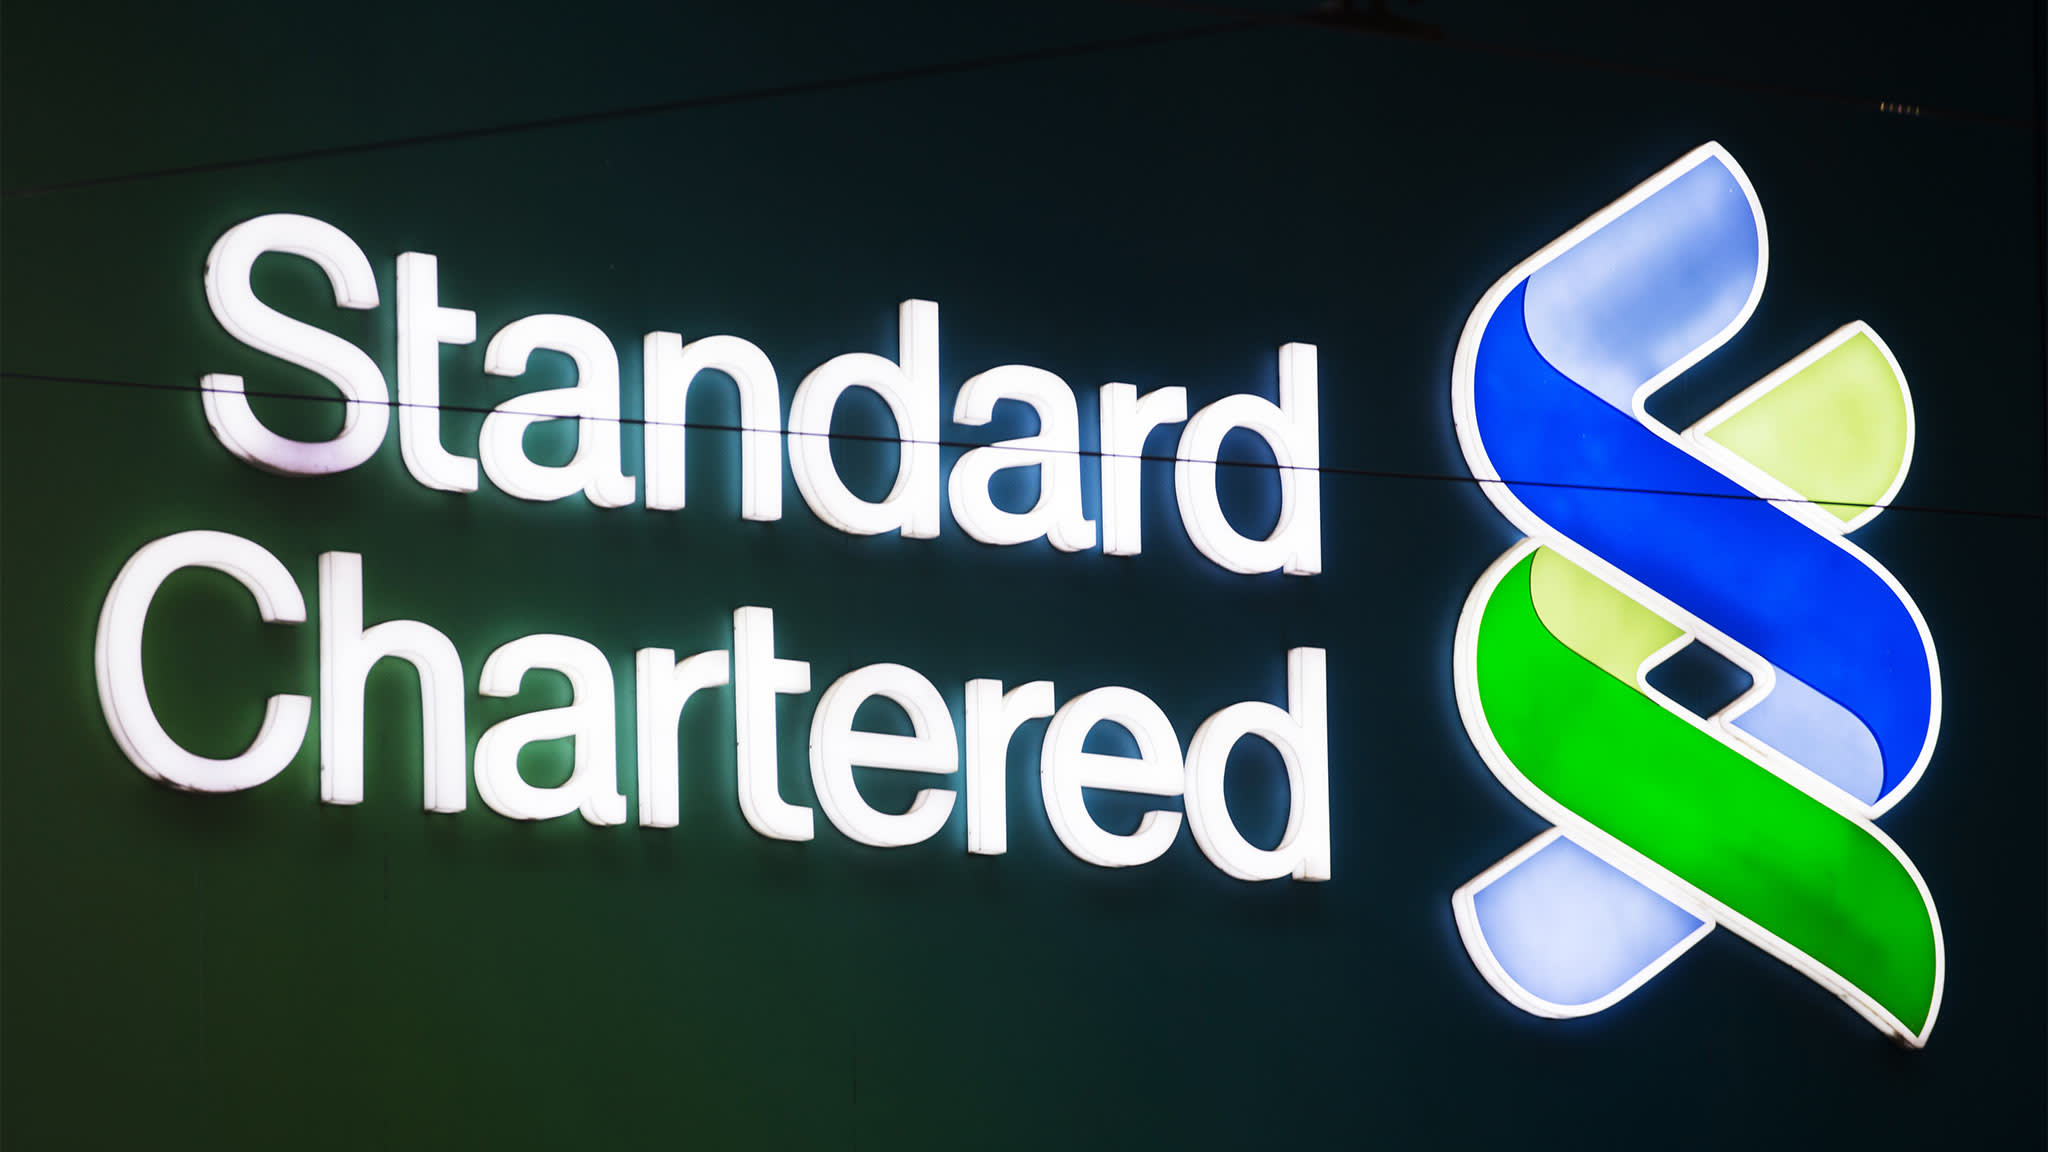 Standardchartered business model youtube to mp3